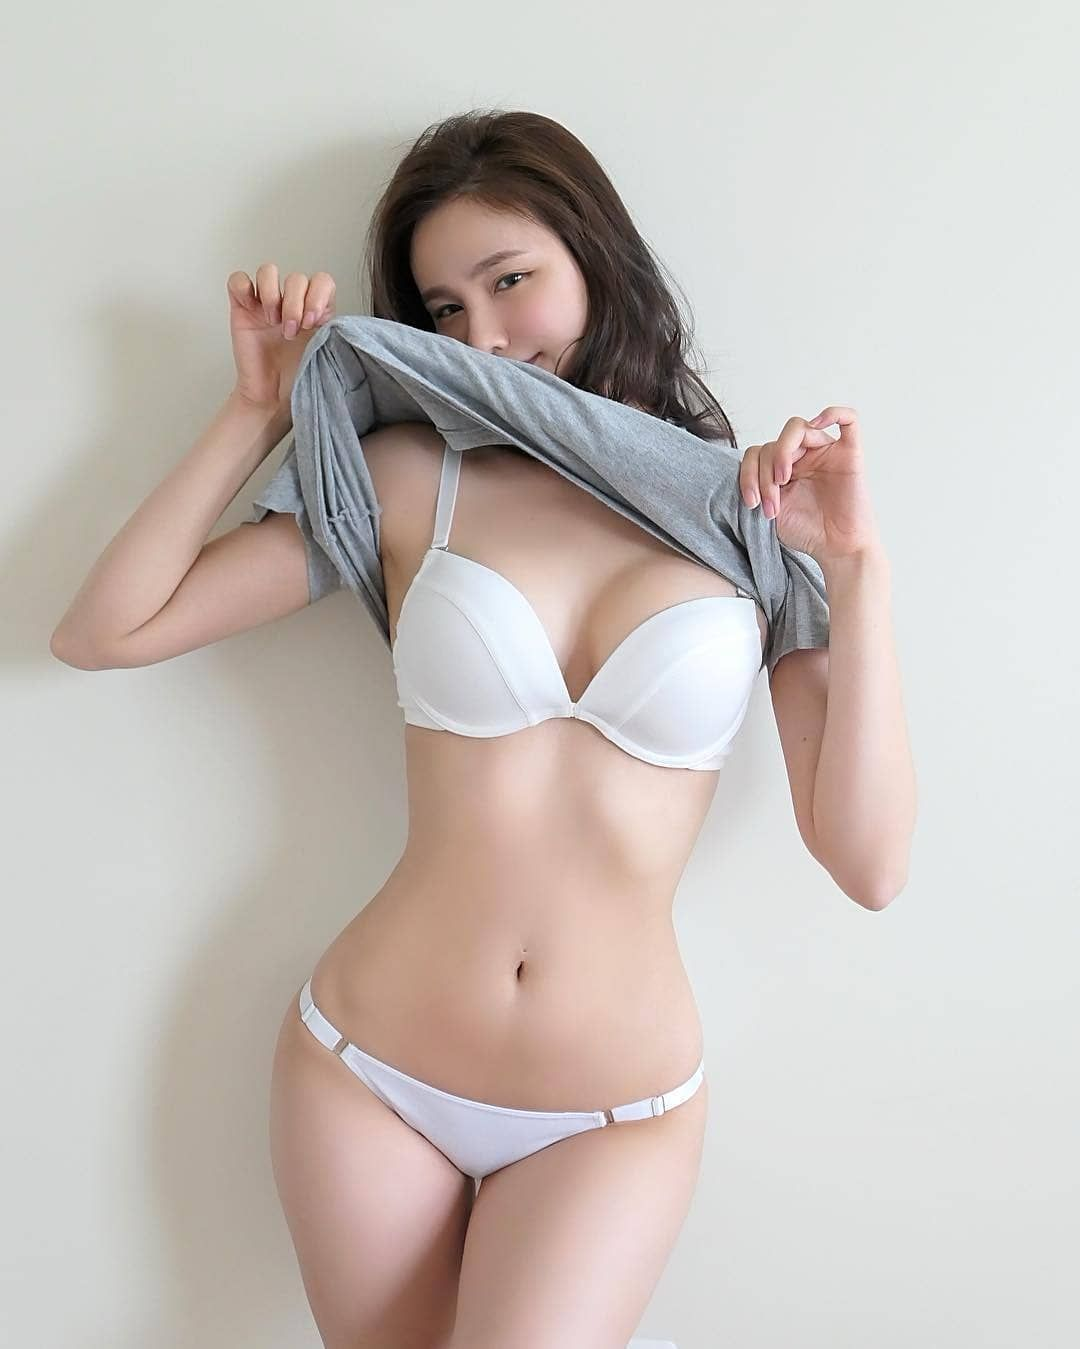 Asian girls wearing thong panties